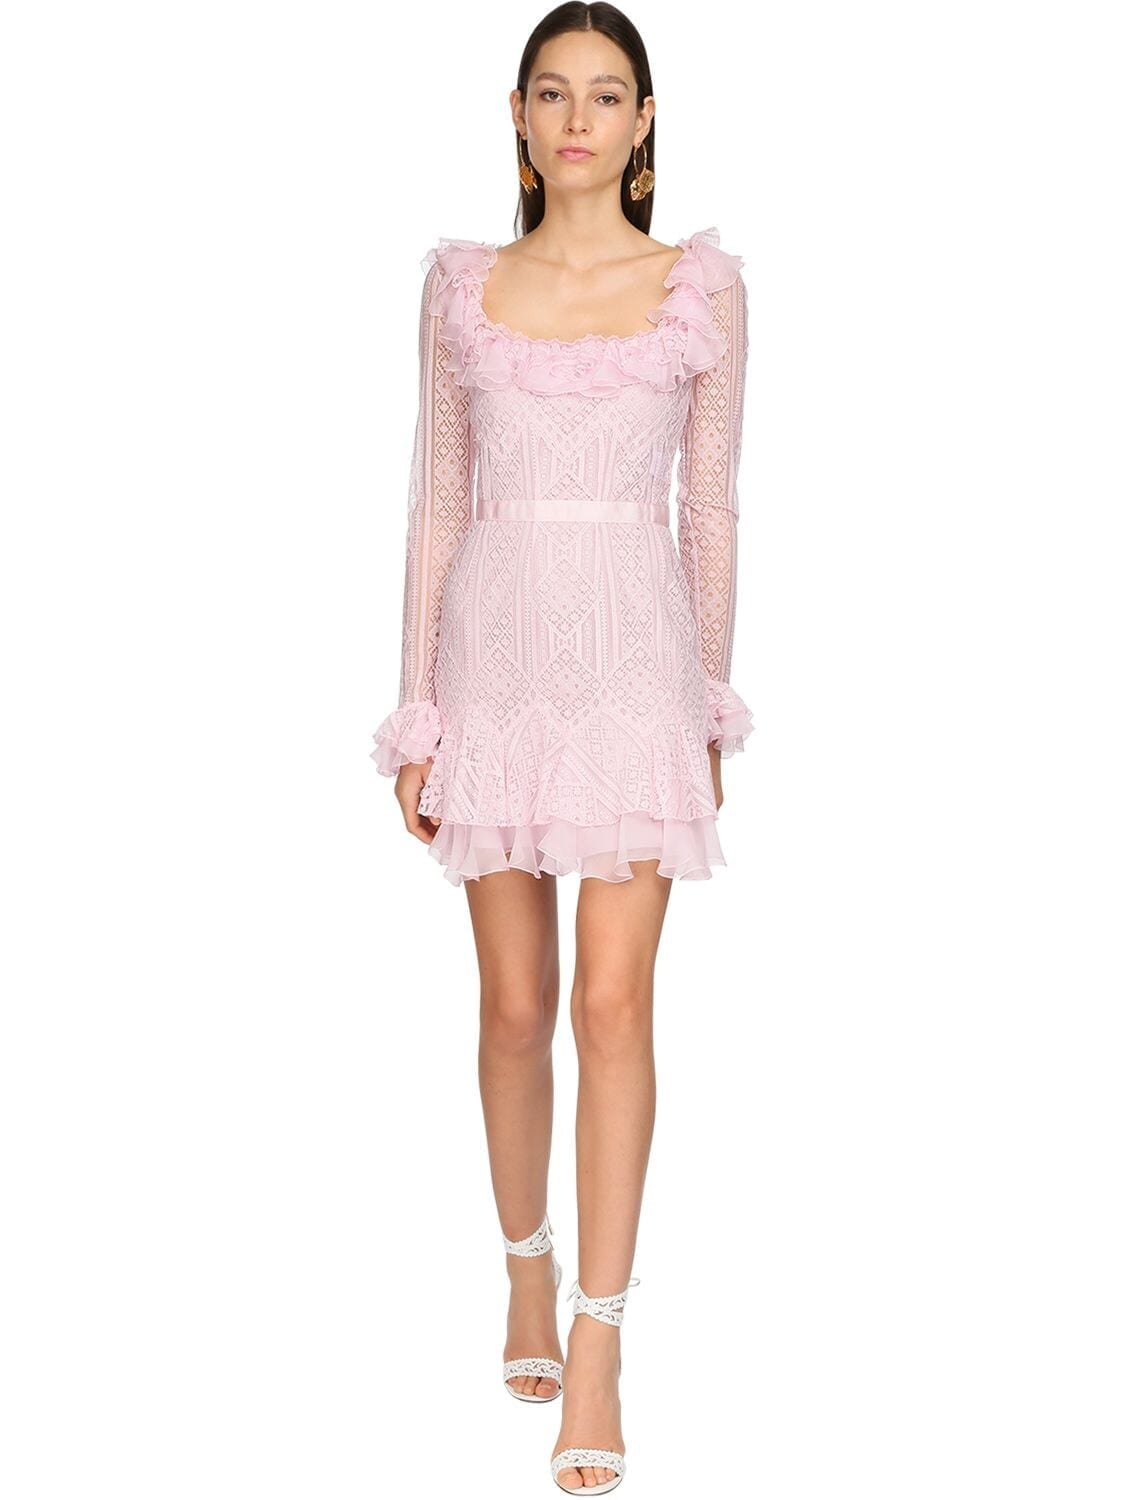 ZUHAIR MURAD Ruffled Lace Mini Dress